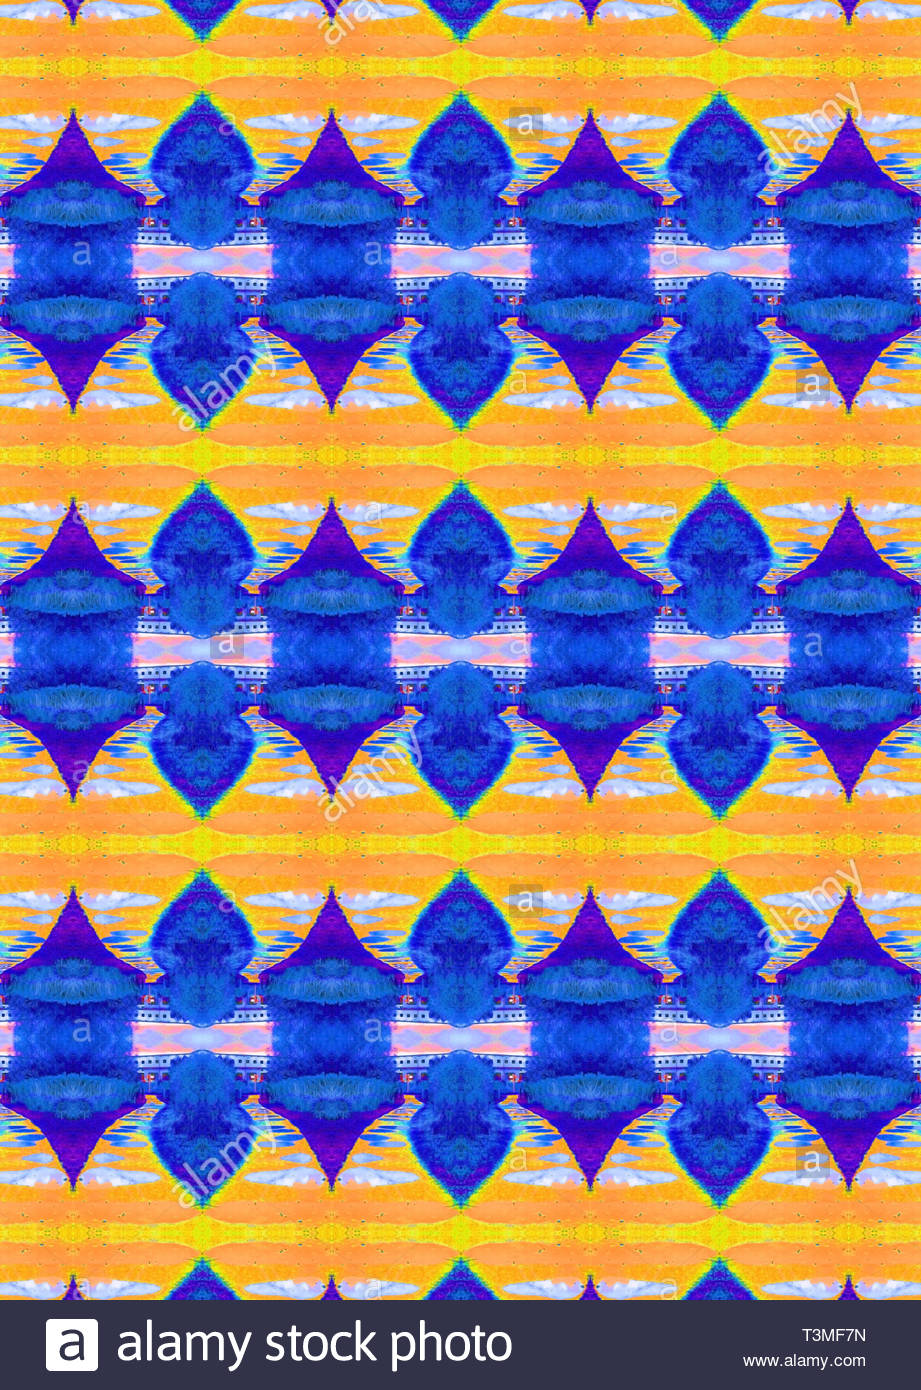 Eastern asiatic style design in blue and yellow. Repeating pattern. Suitable for greetings cards and fabrics. - Stock Image